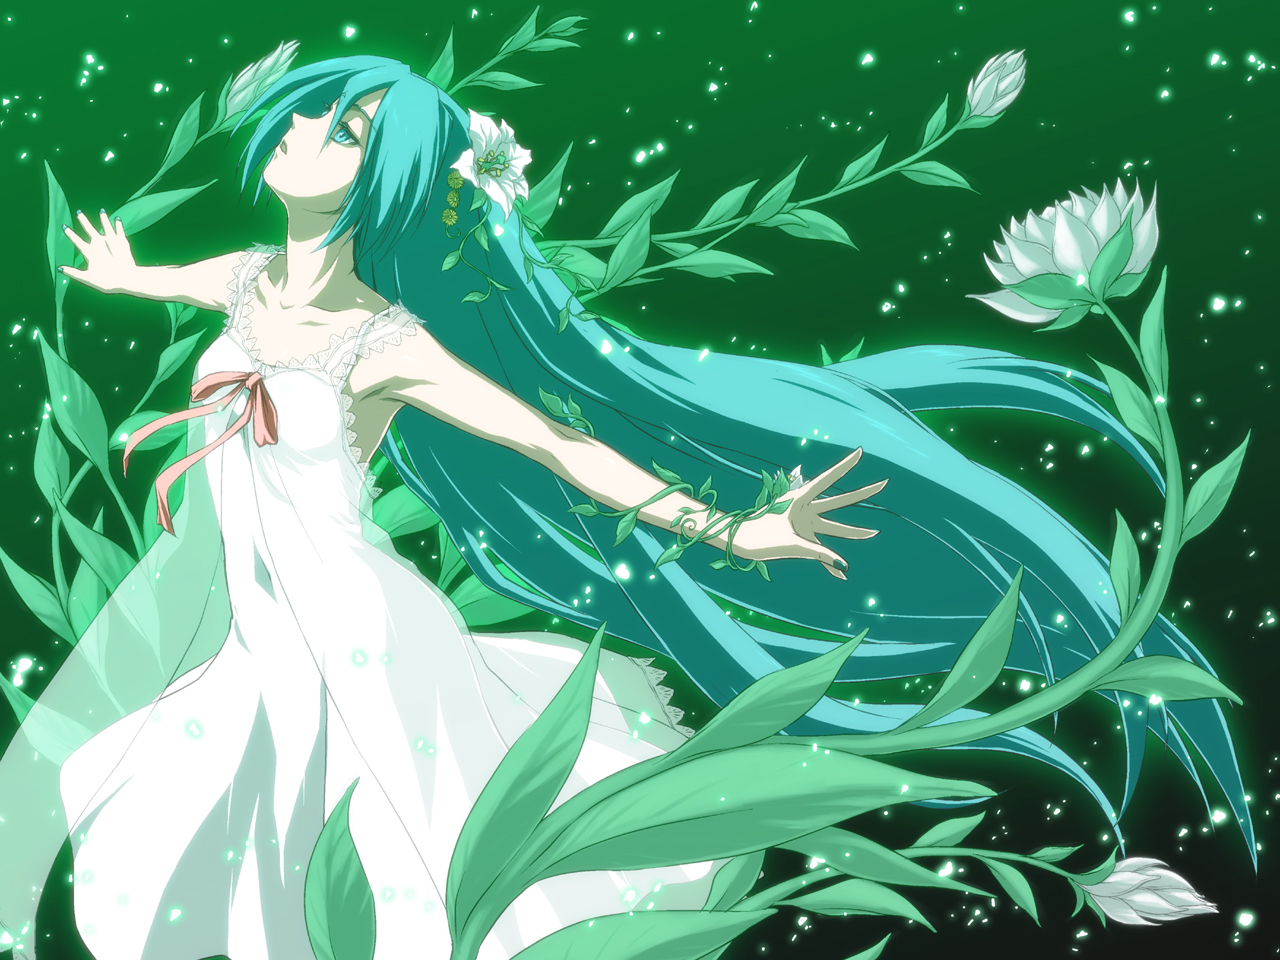 aqua_eyes aqua_hair dress flowers hatsune_miku iga_tomoteru long_hair saya_no_uta vocaloid